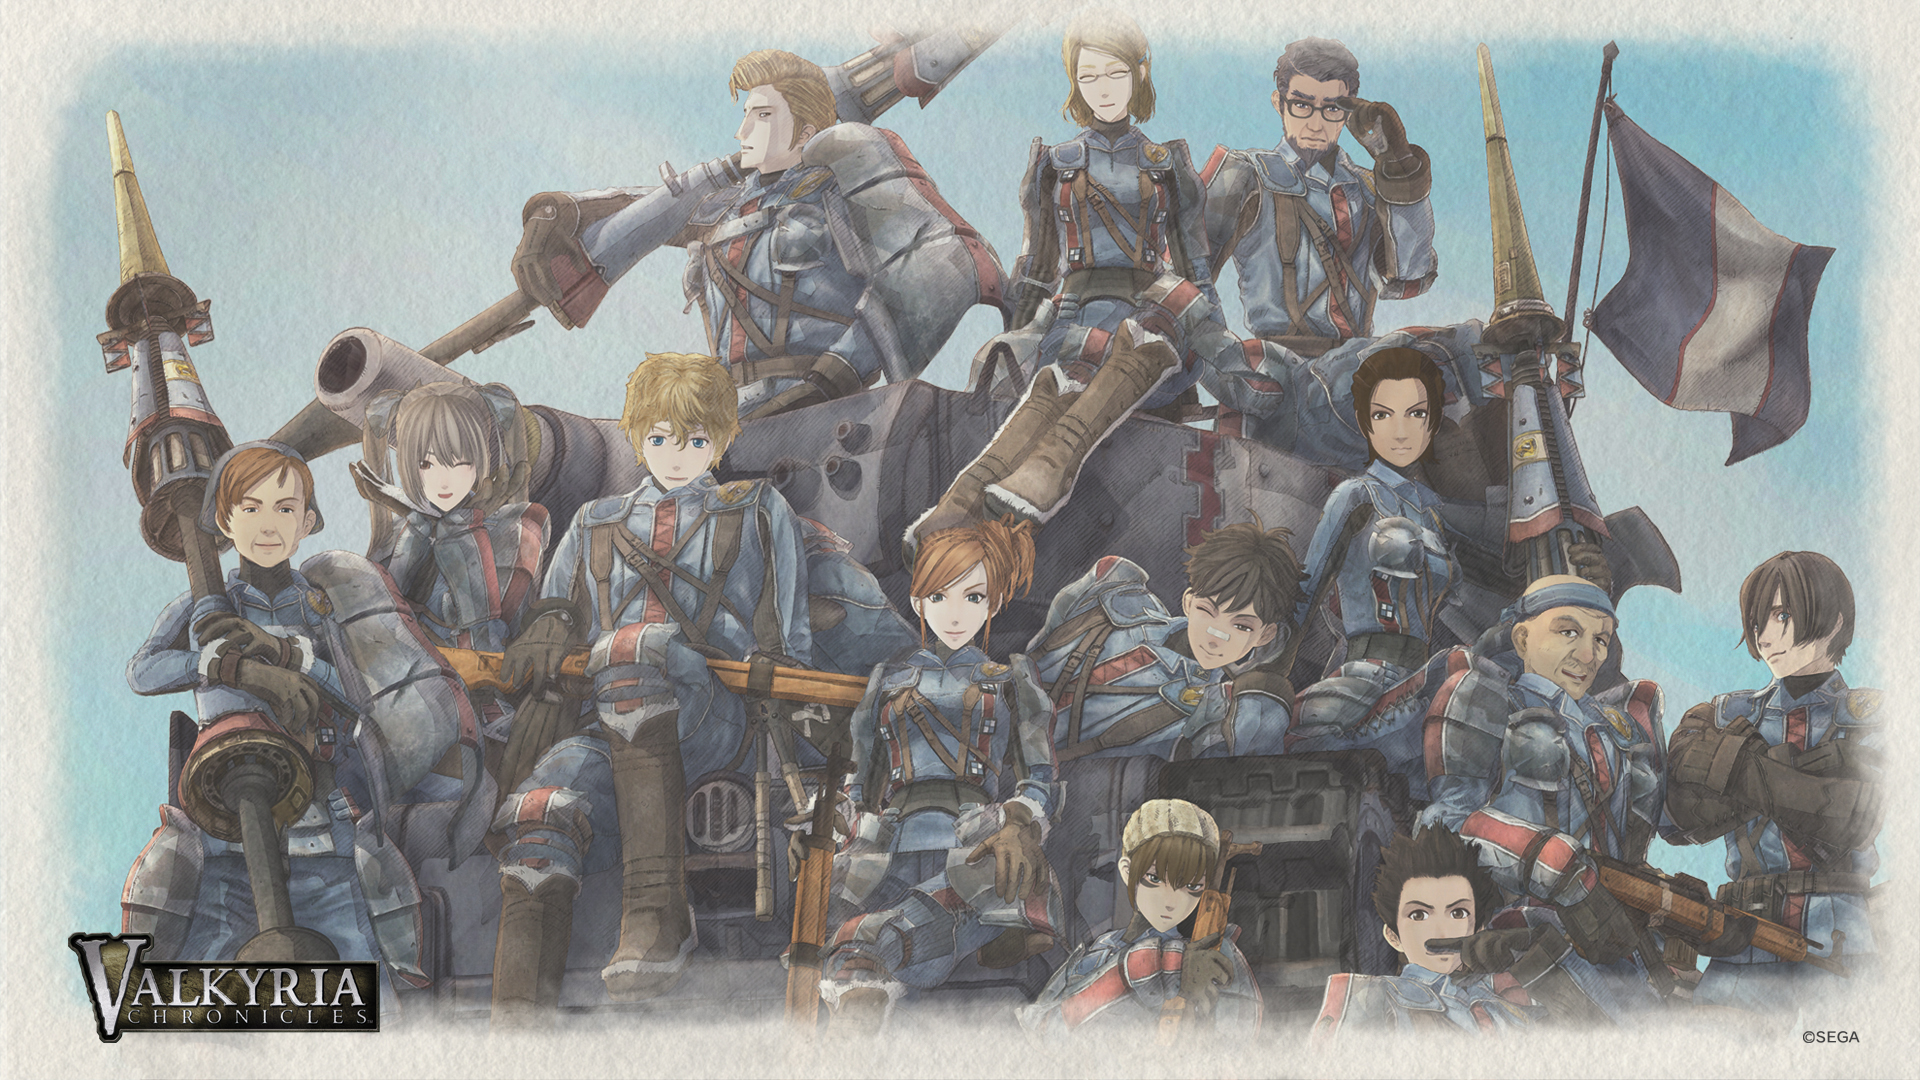 1300.ValkyriaChronicles_5F00_Wallpaper2_2D00_HD